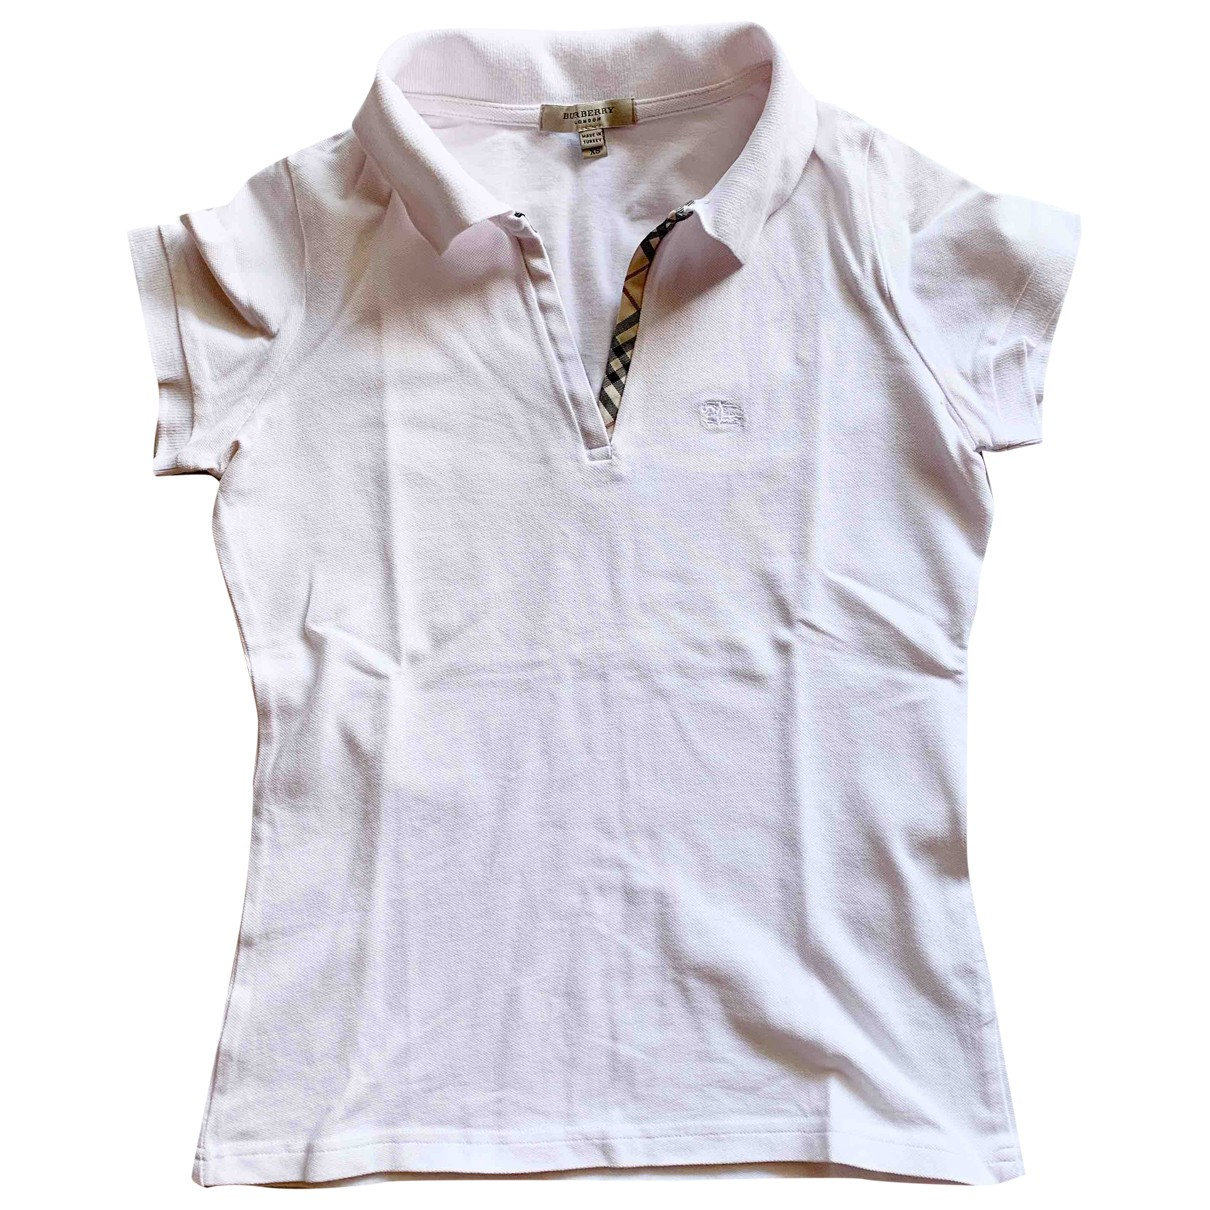 Burberry \N White Cotton  top for Women 38 IT